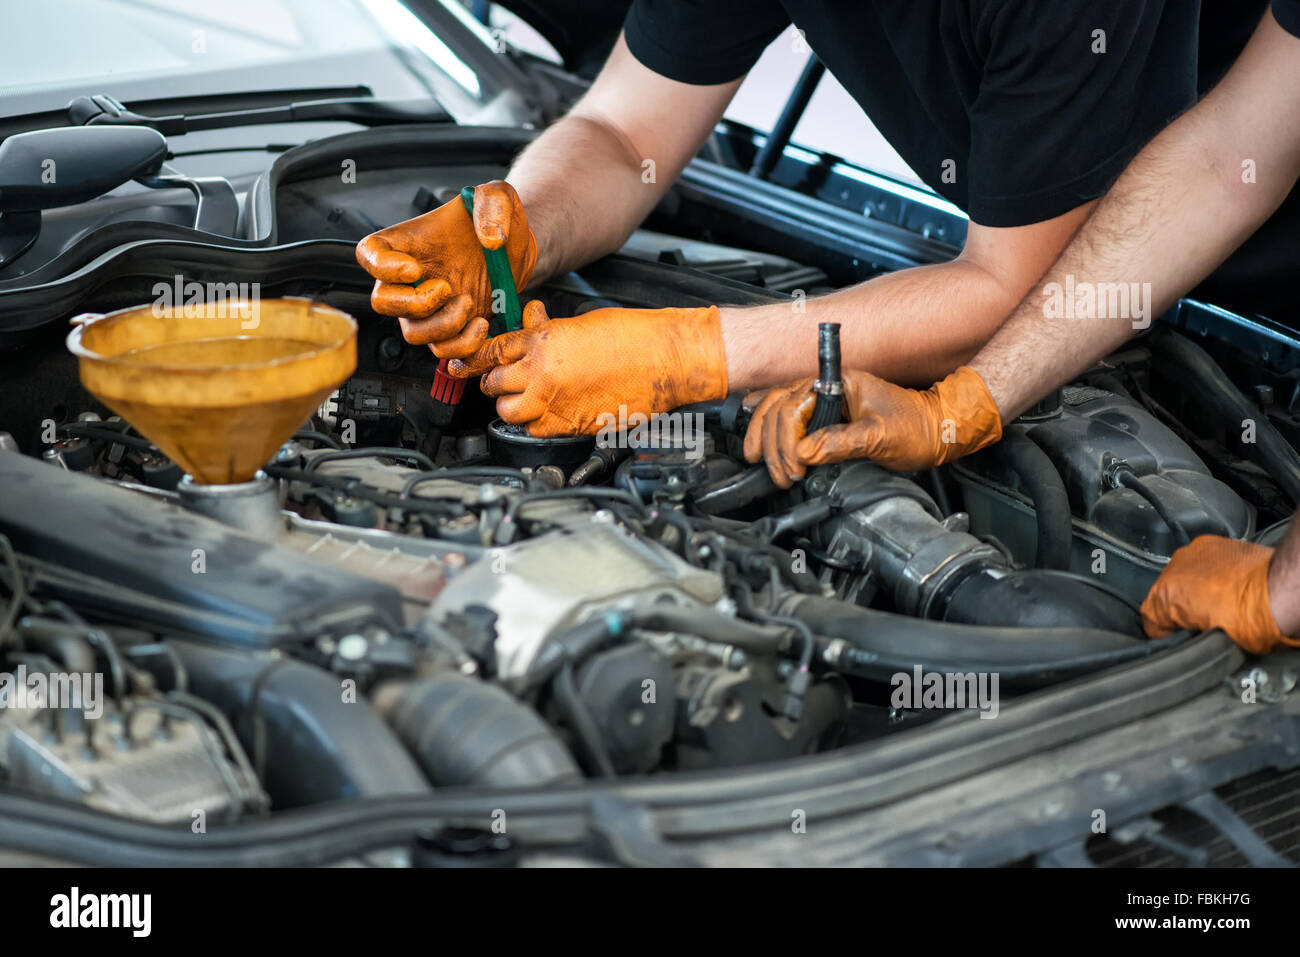 Two mechanics working on a vehicle in a garage - Stock Image